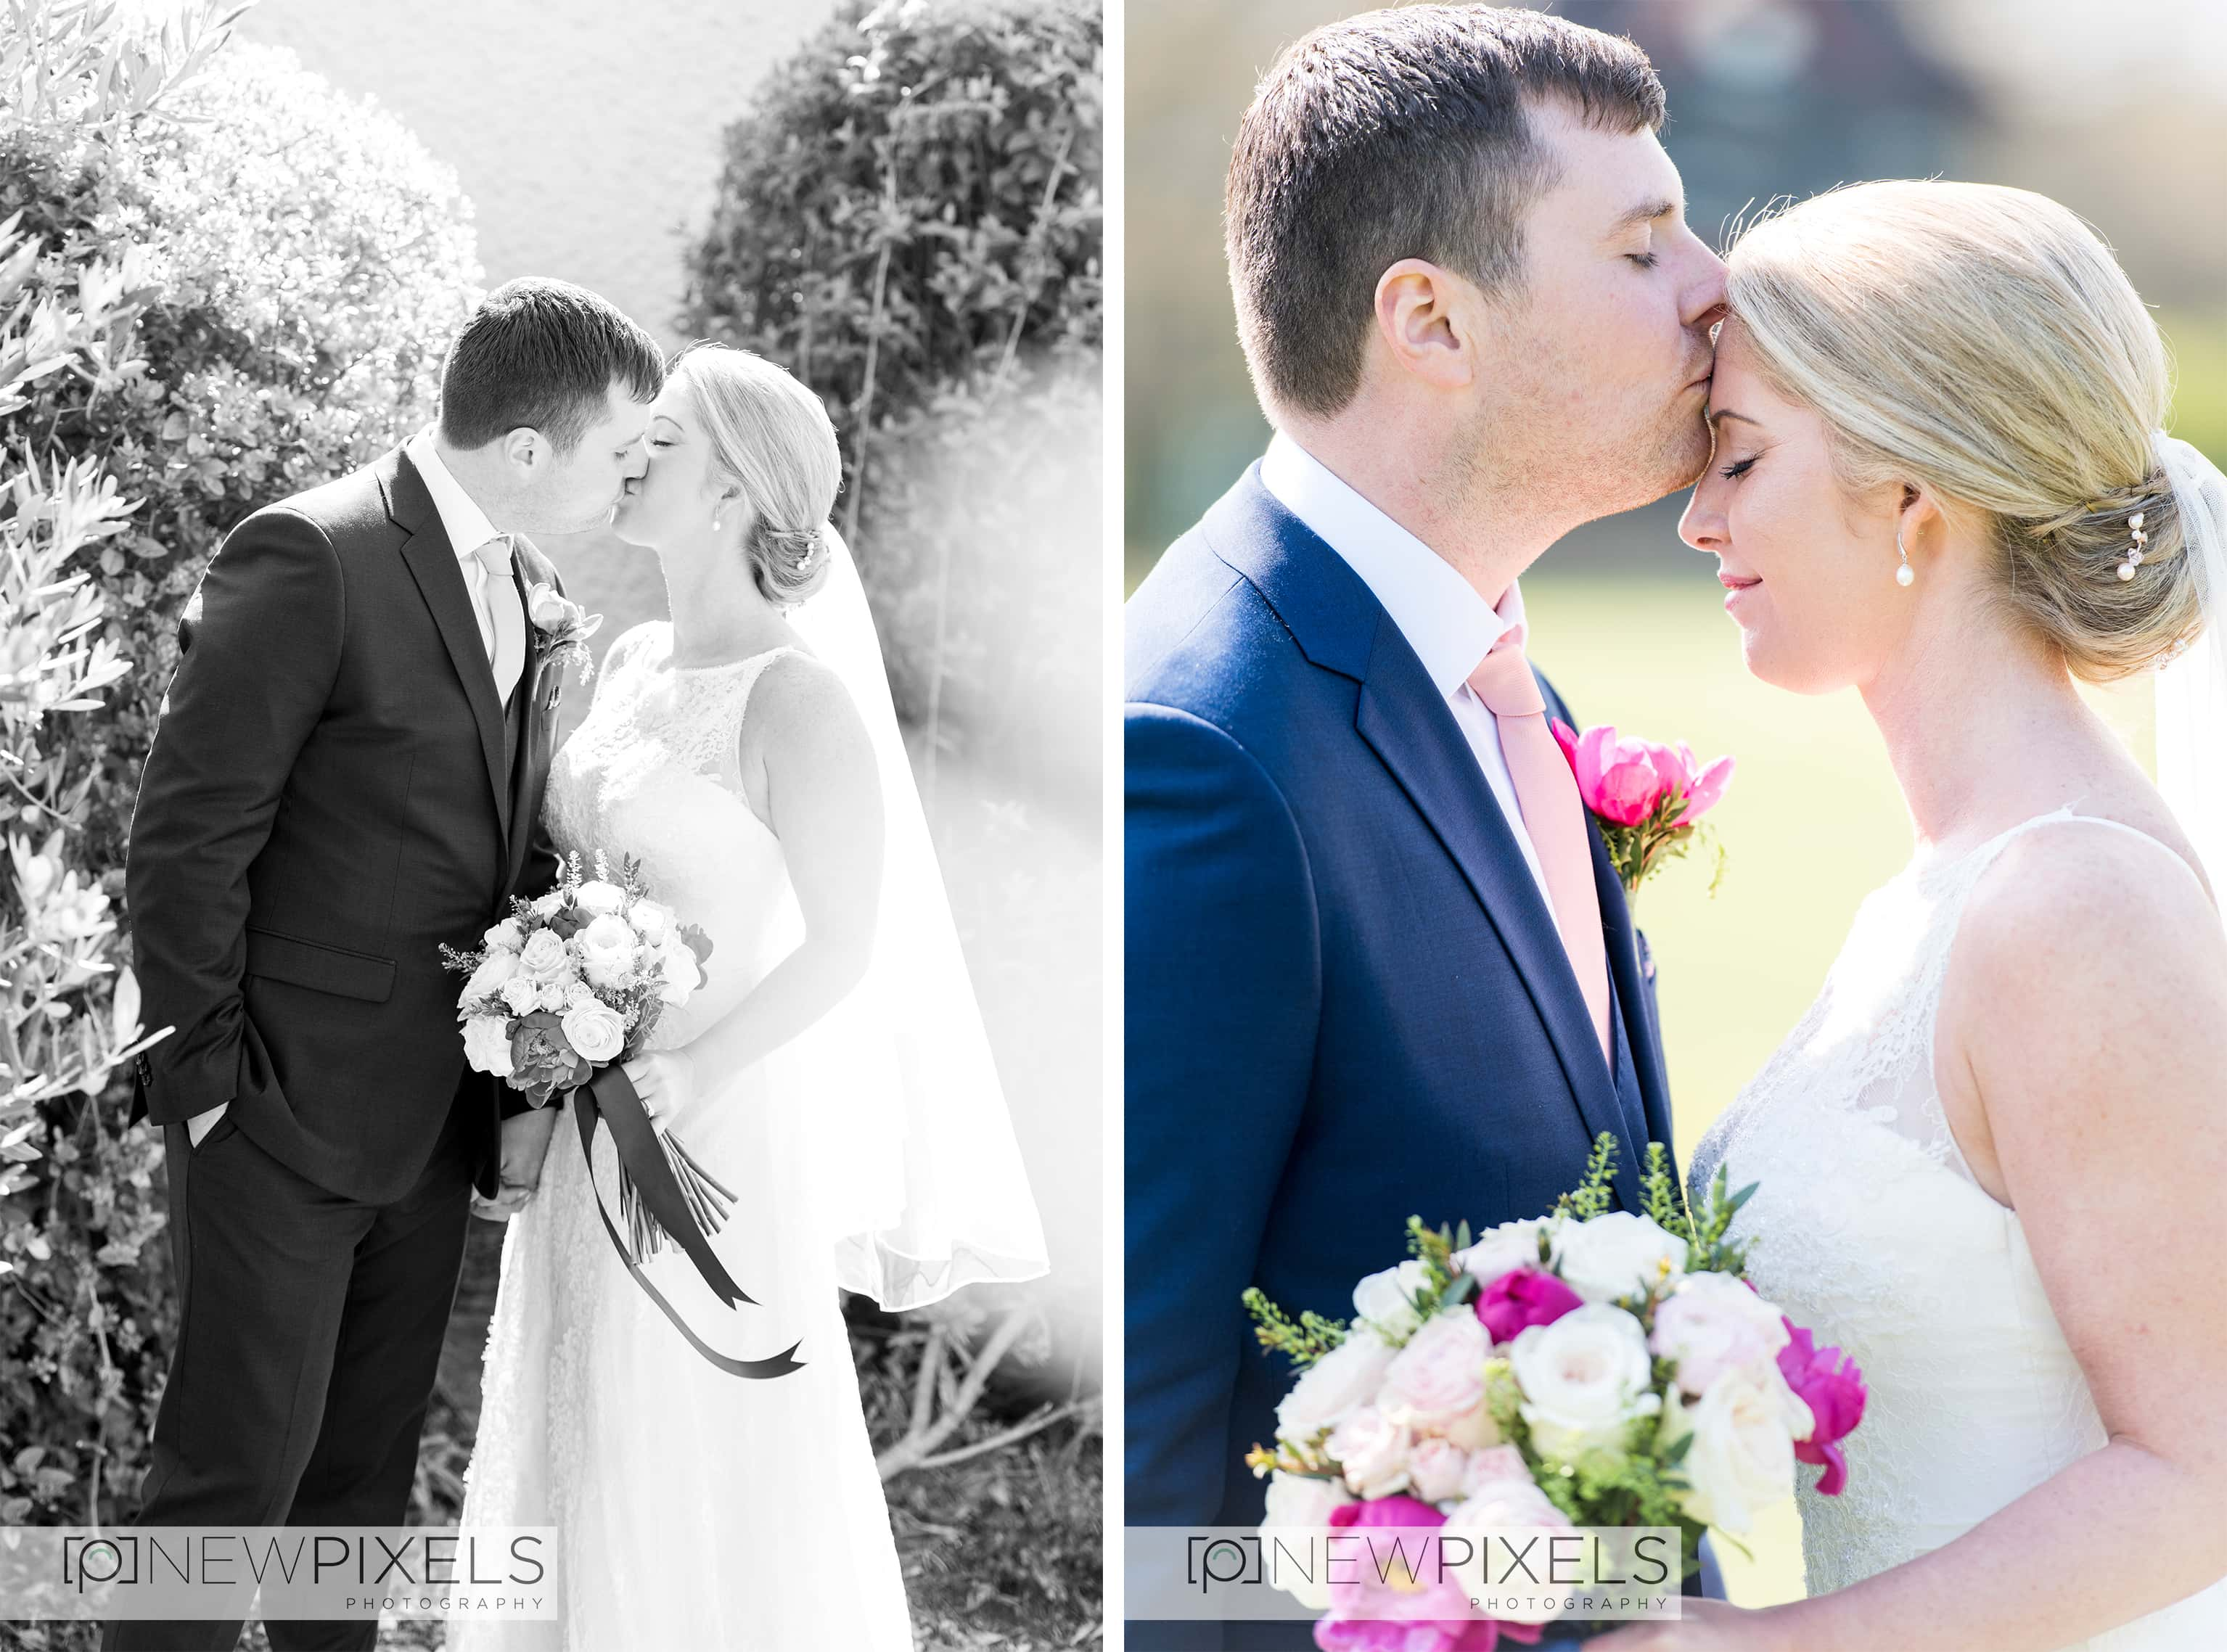 Wedding photography at London Shenley Club, Wedding photographer at London Shenley Club